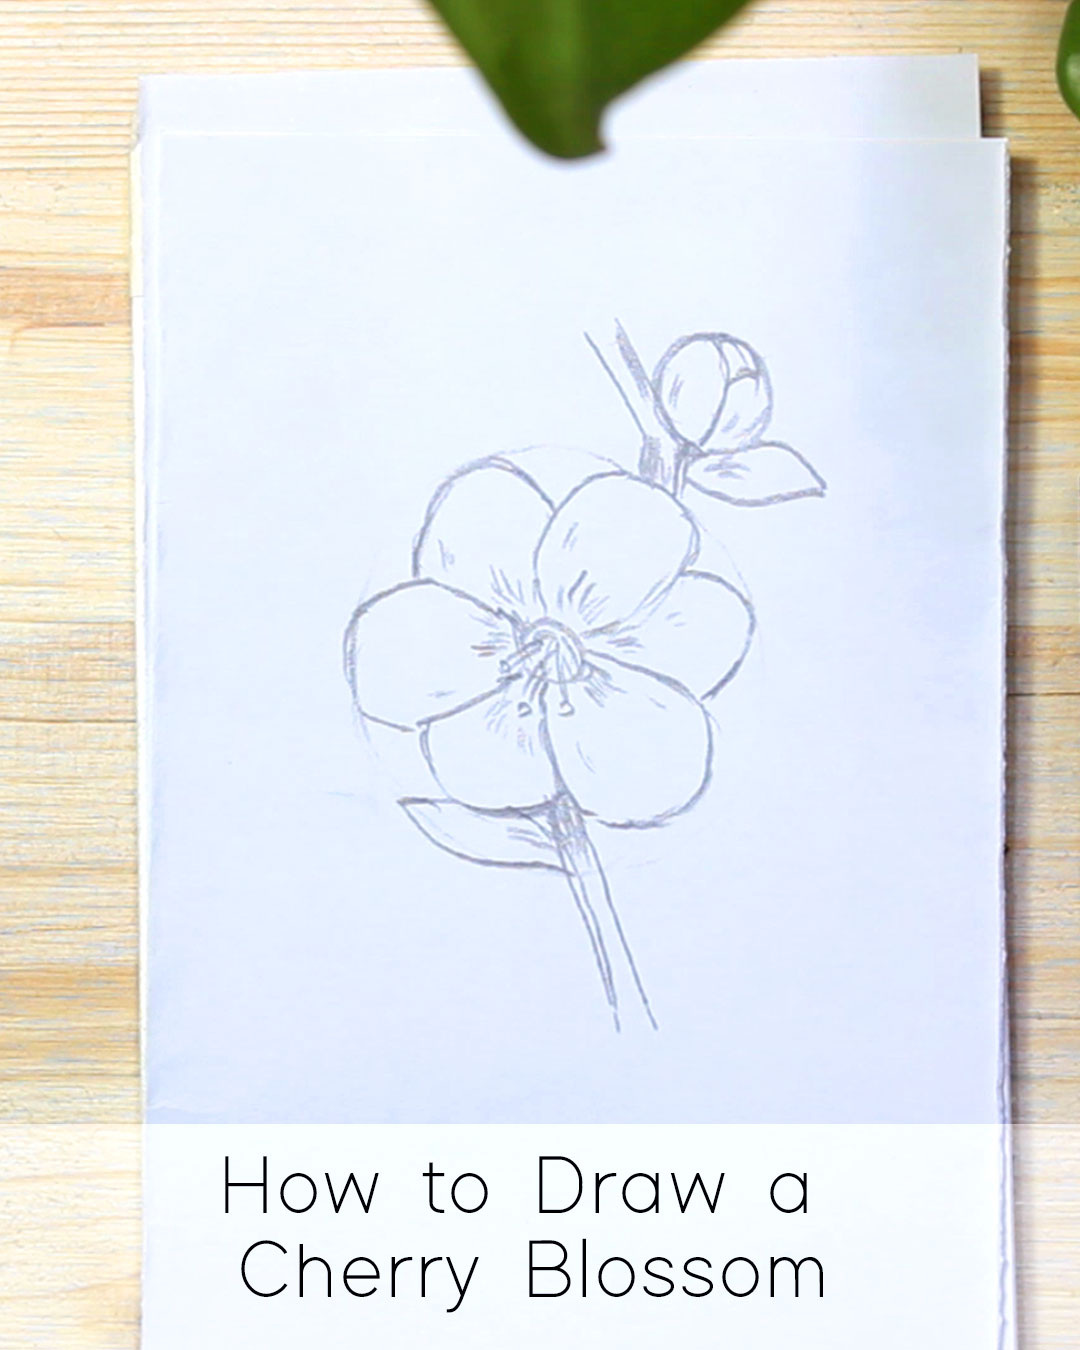 How to Draw a Cherry Blossom